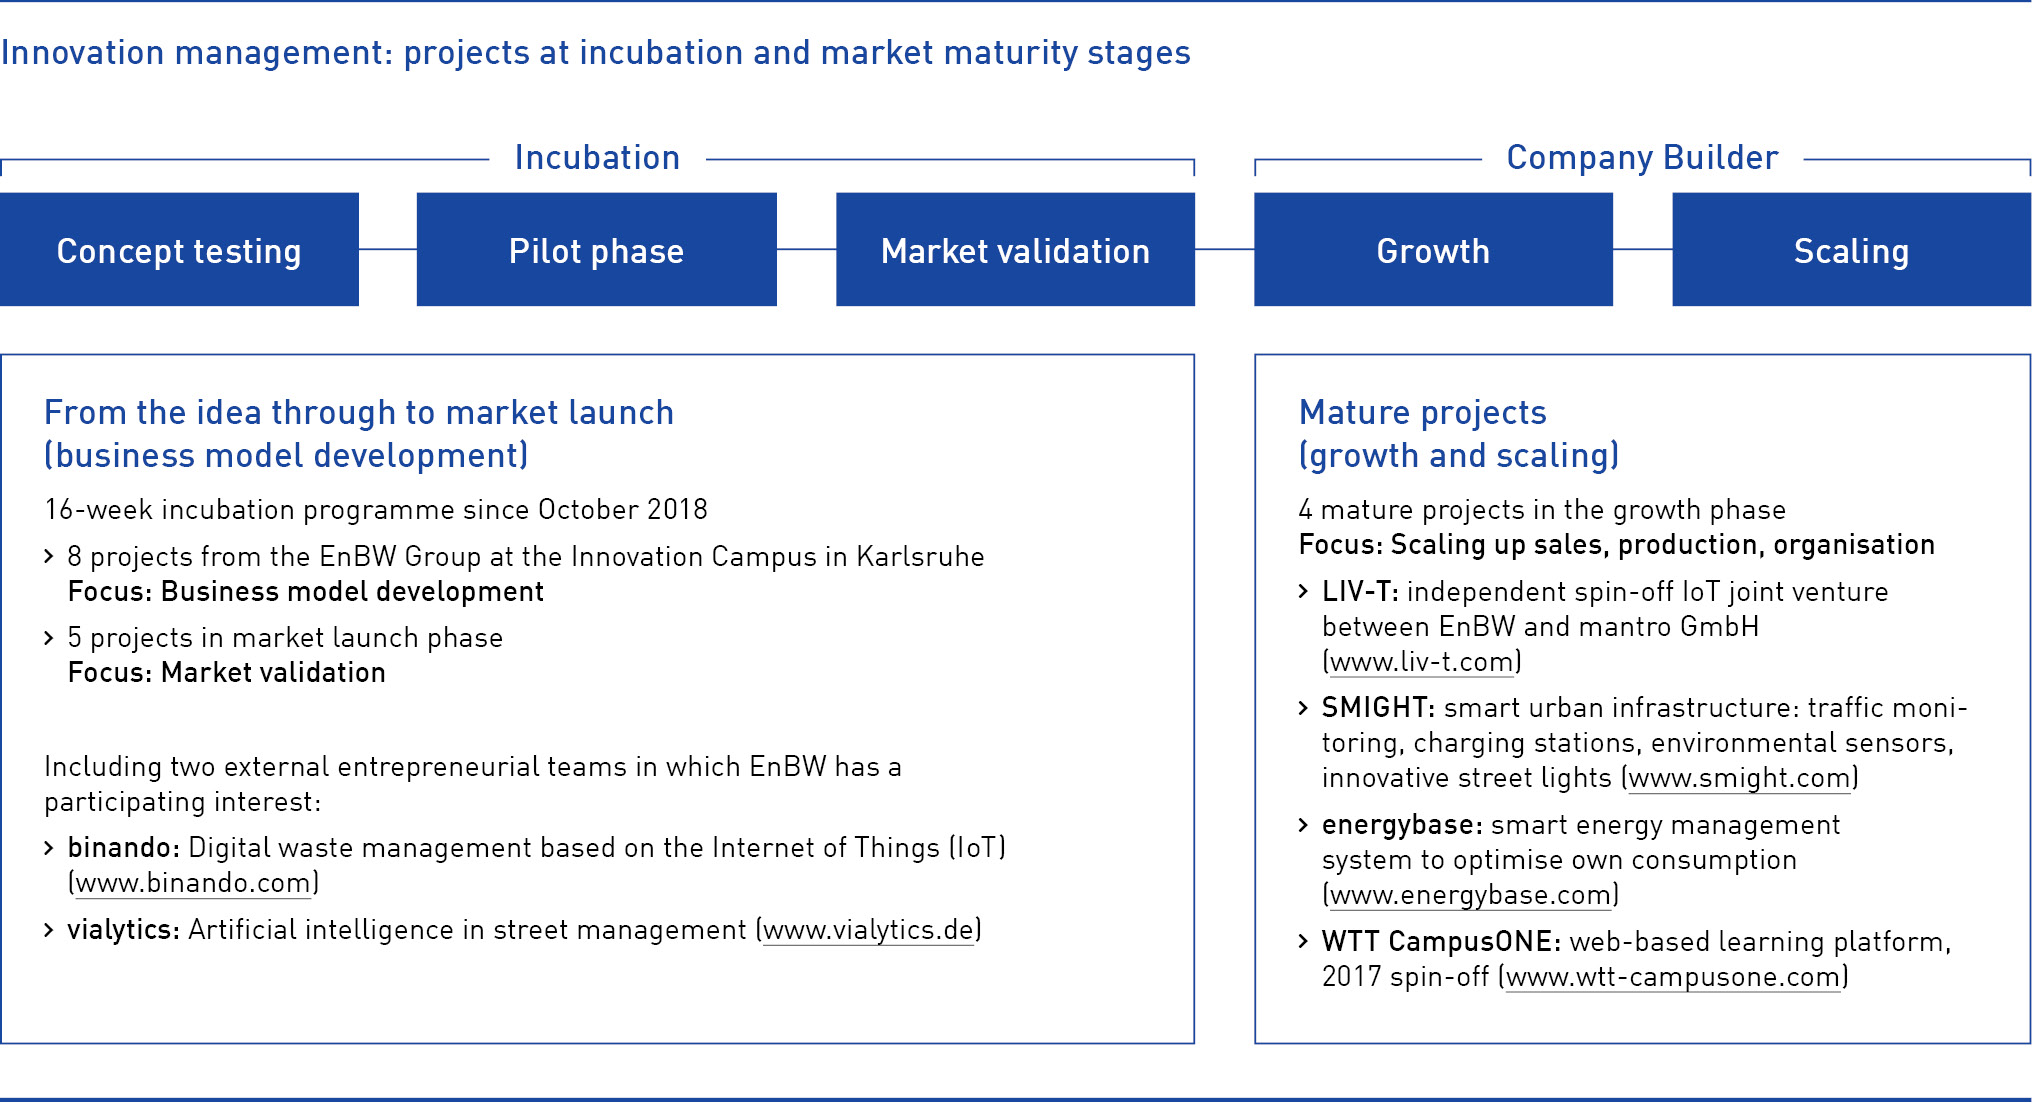 Innovation management_projects at incubation and market maturity stages